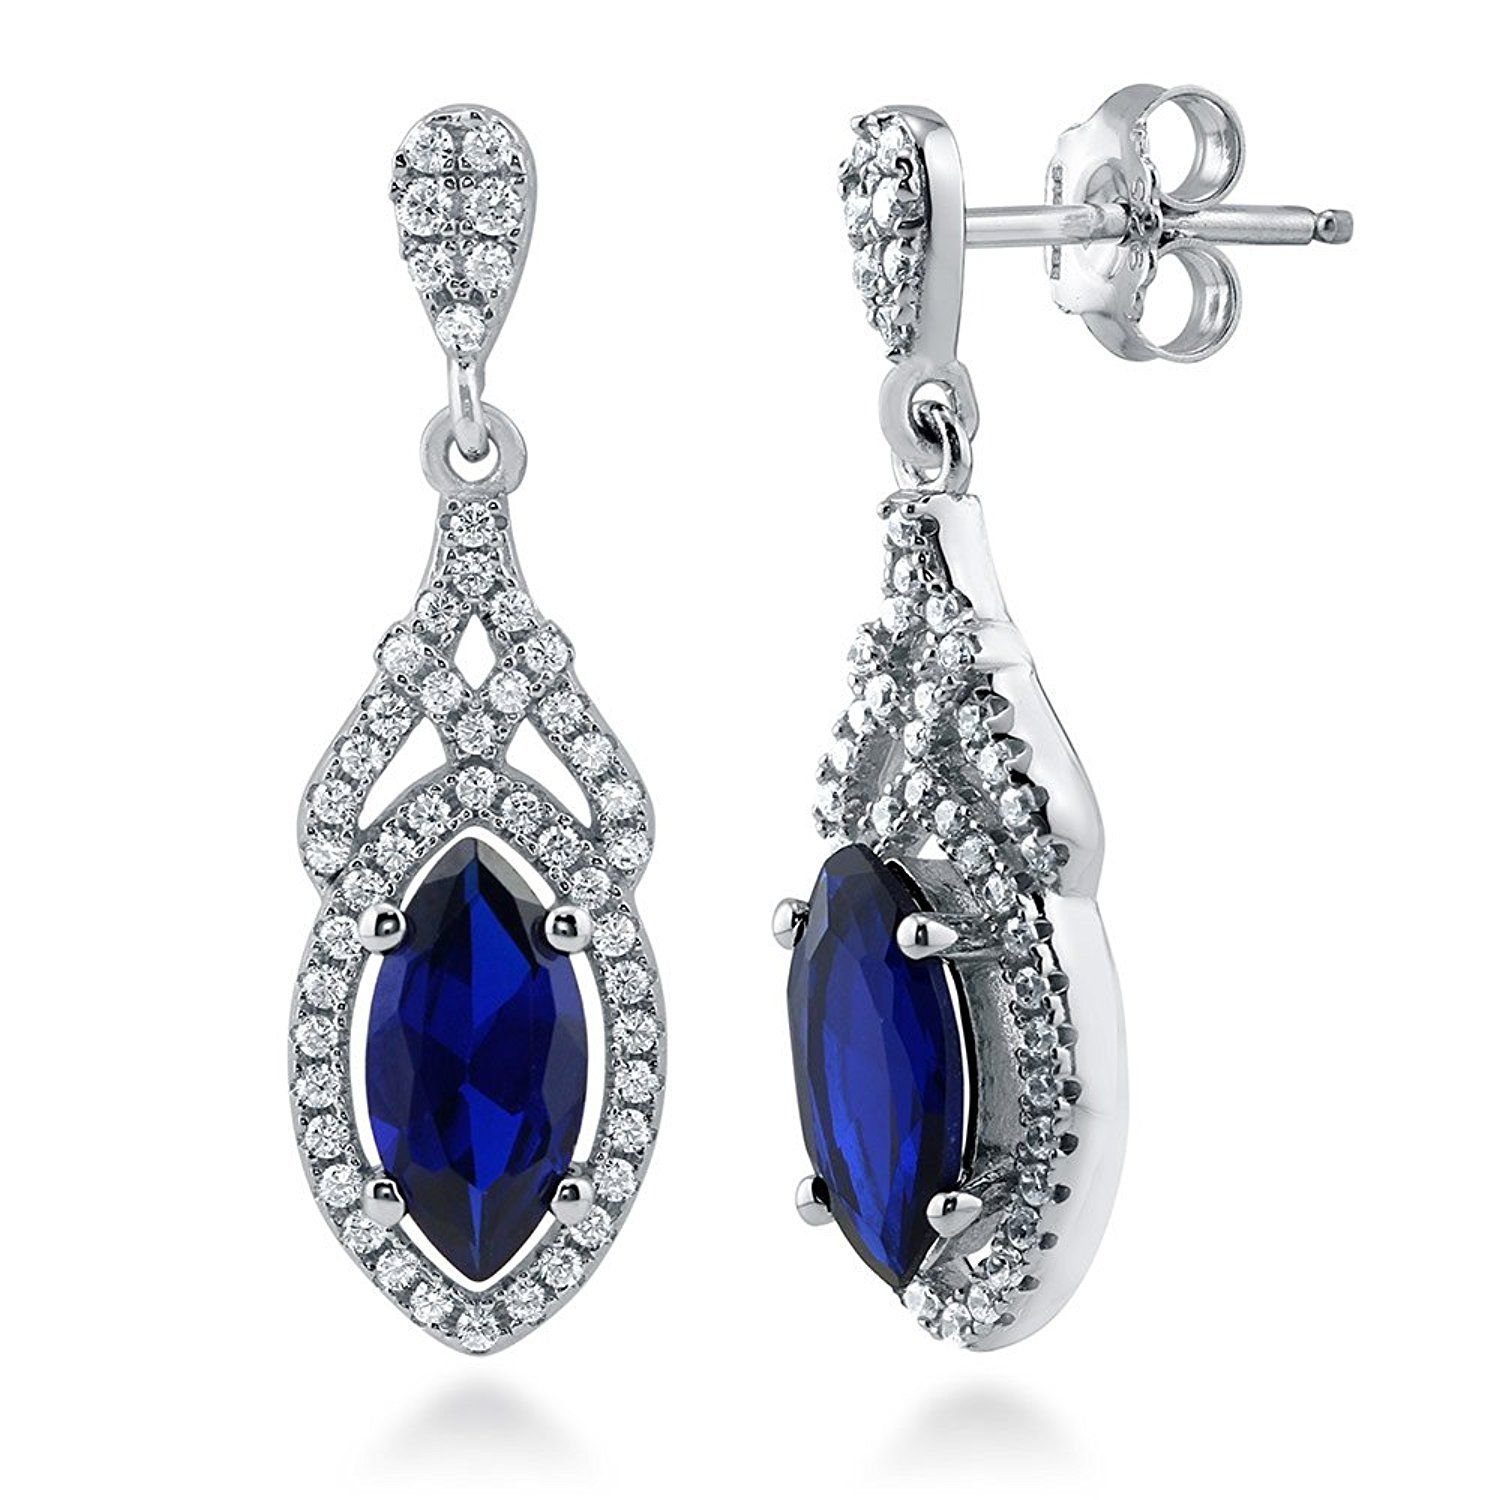 1099bebbb BERRICLE Rhodium Plated Sterling Silver Cubic Zirconia CZ Art Deco Halo  Dangle Drop Earrings *** More info could be found at the image url.